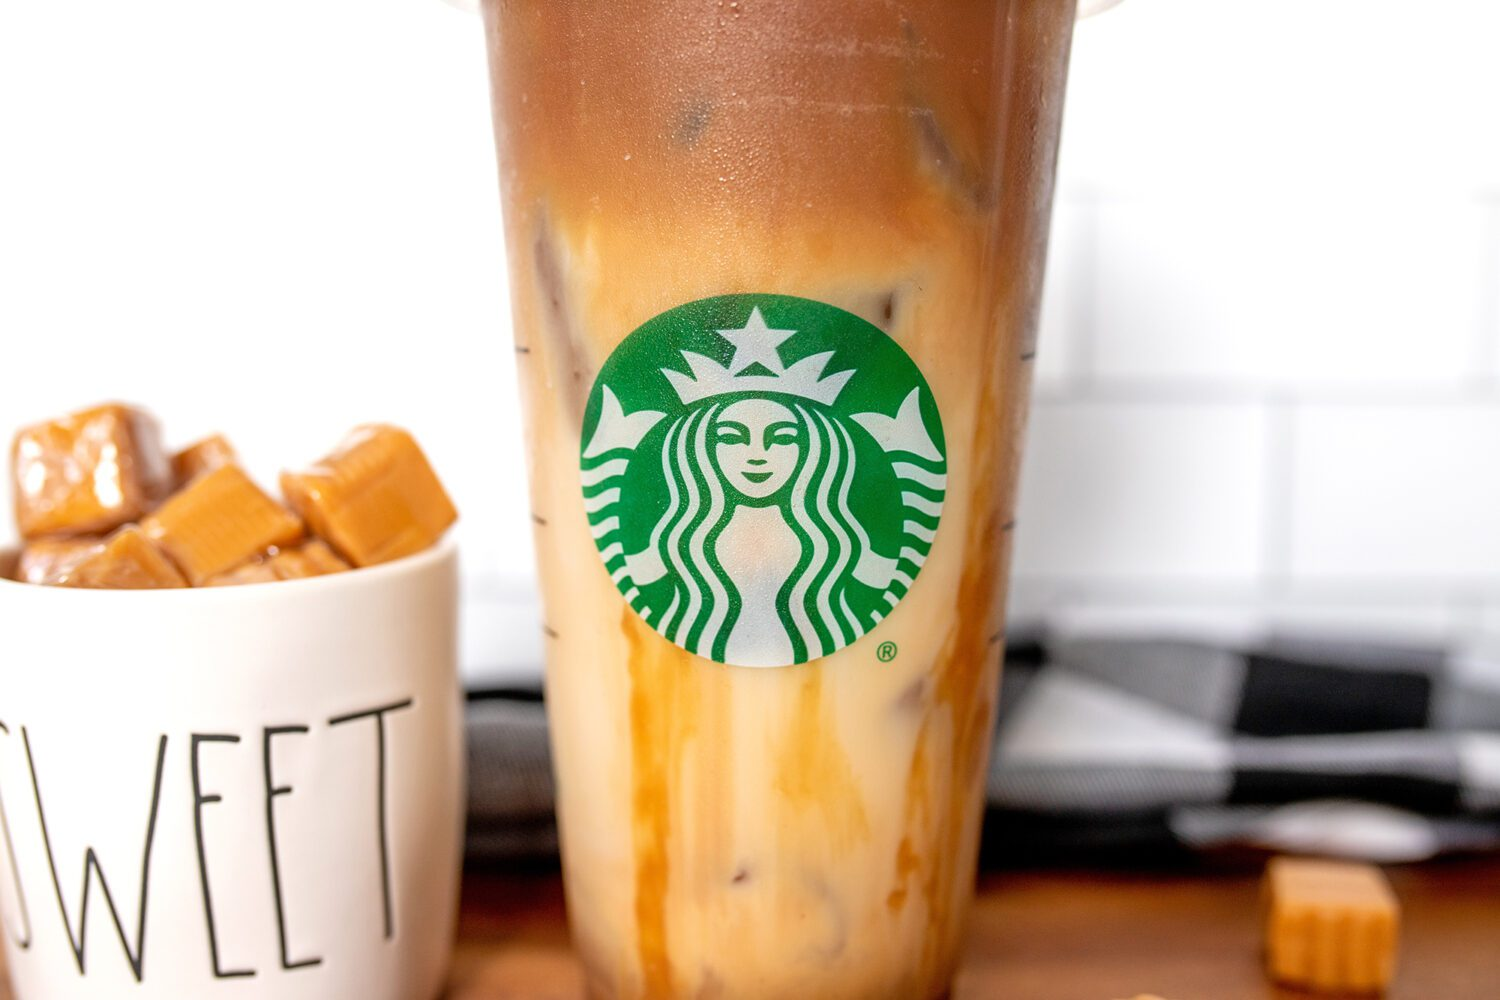 close up of starbucks logo on a cup